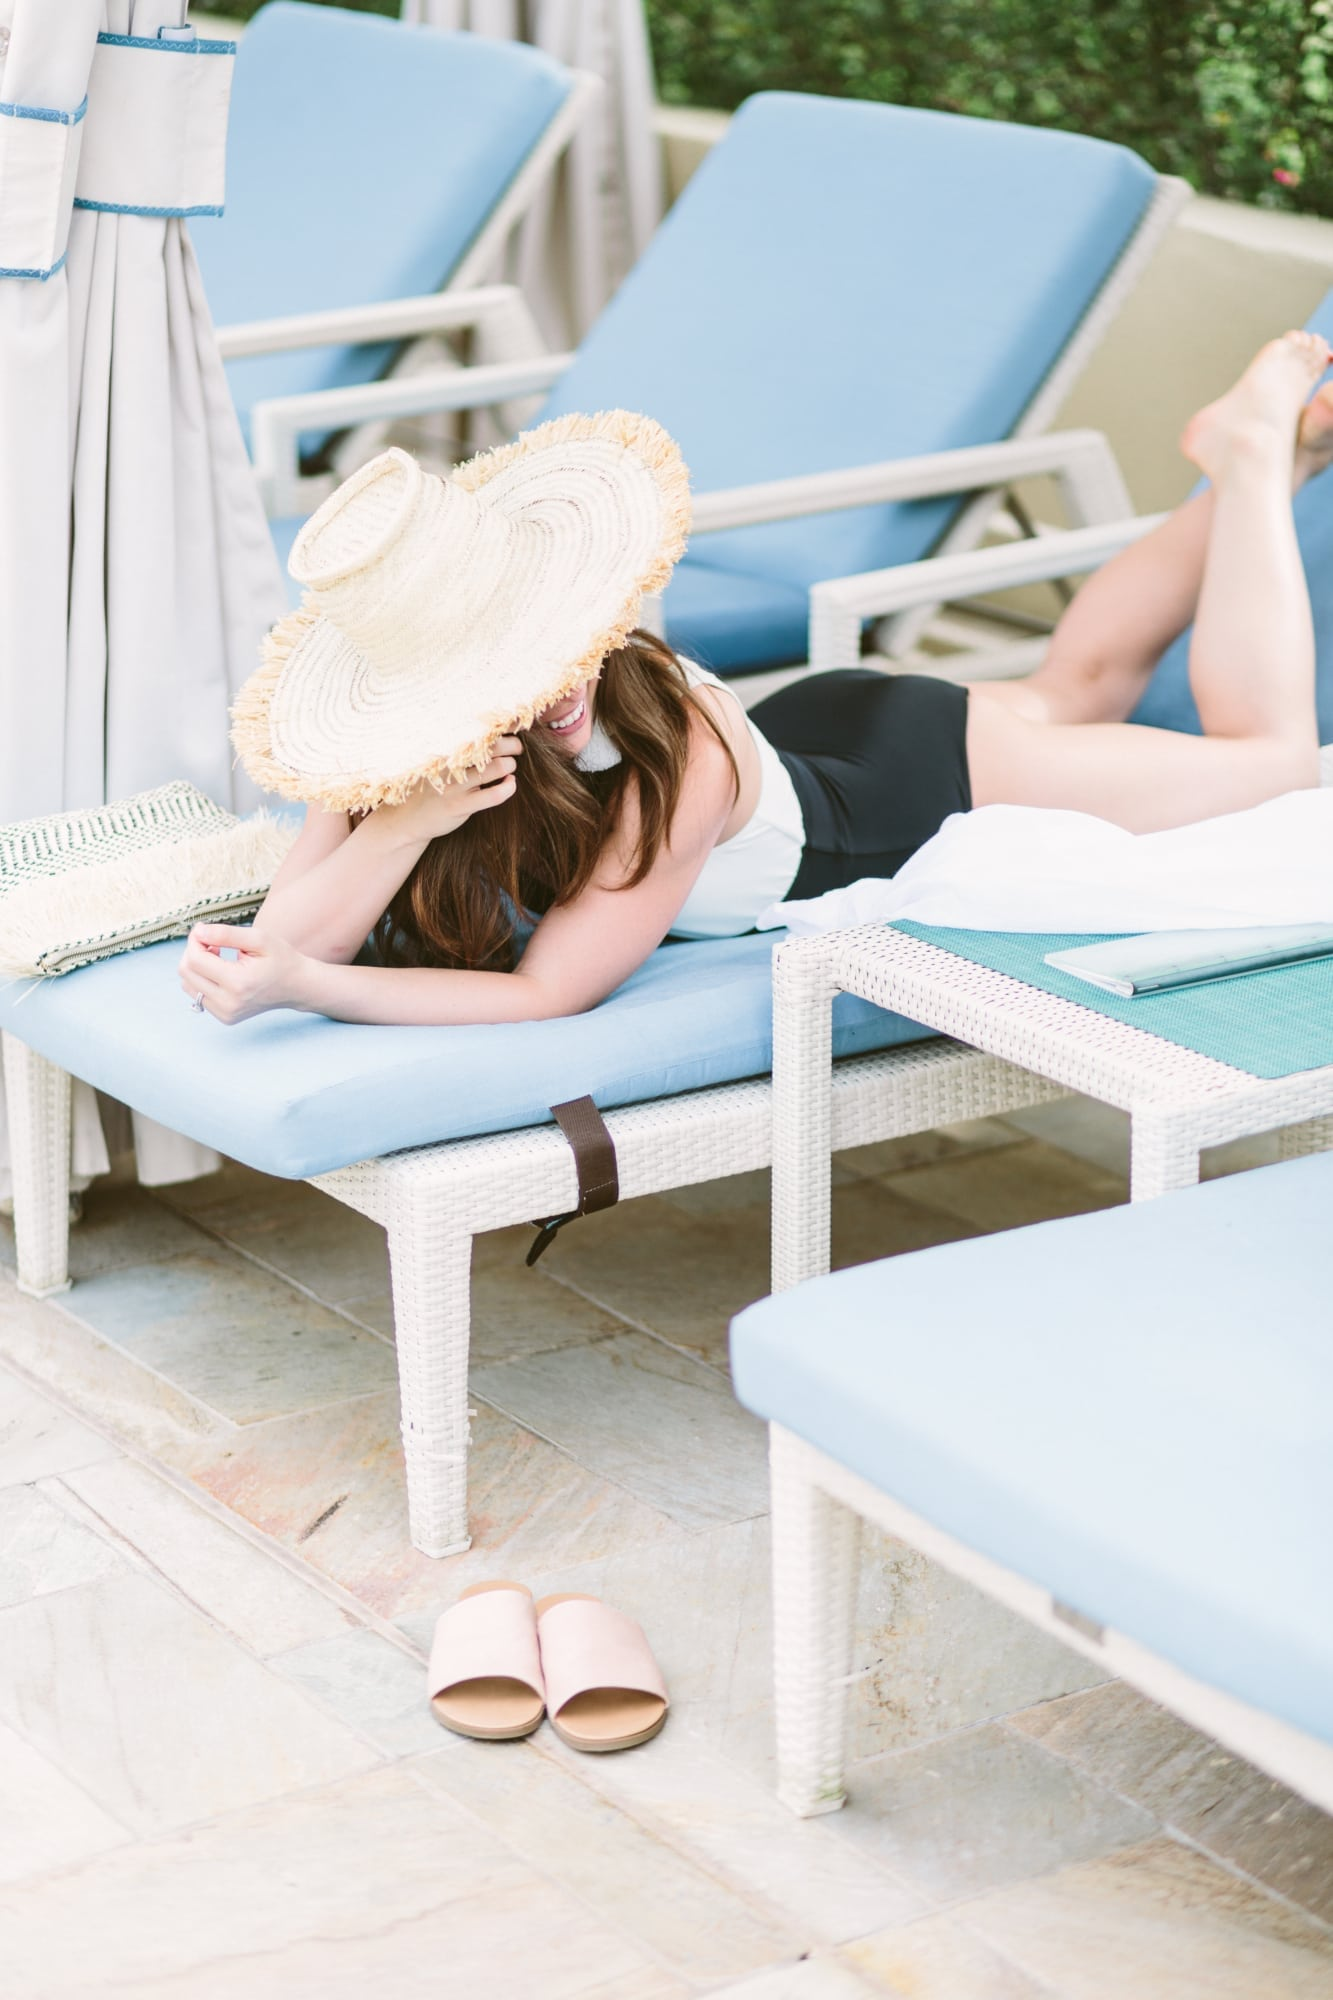 Poolside wearing Solid and Striped Swimsuit and Indego Africa Hat